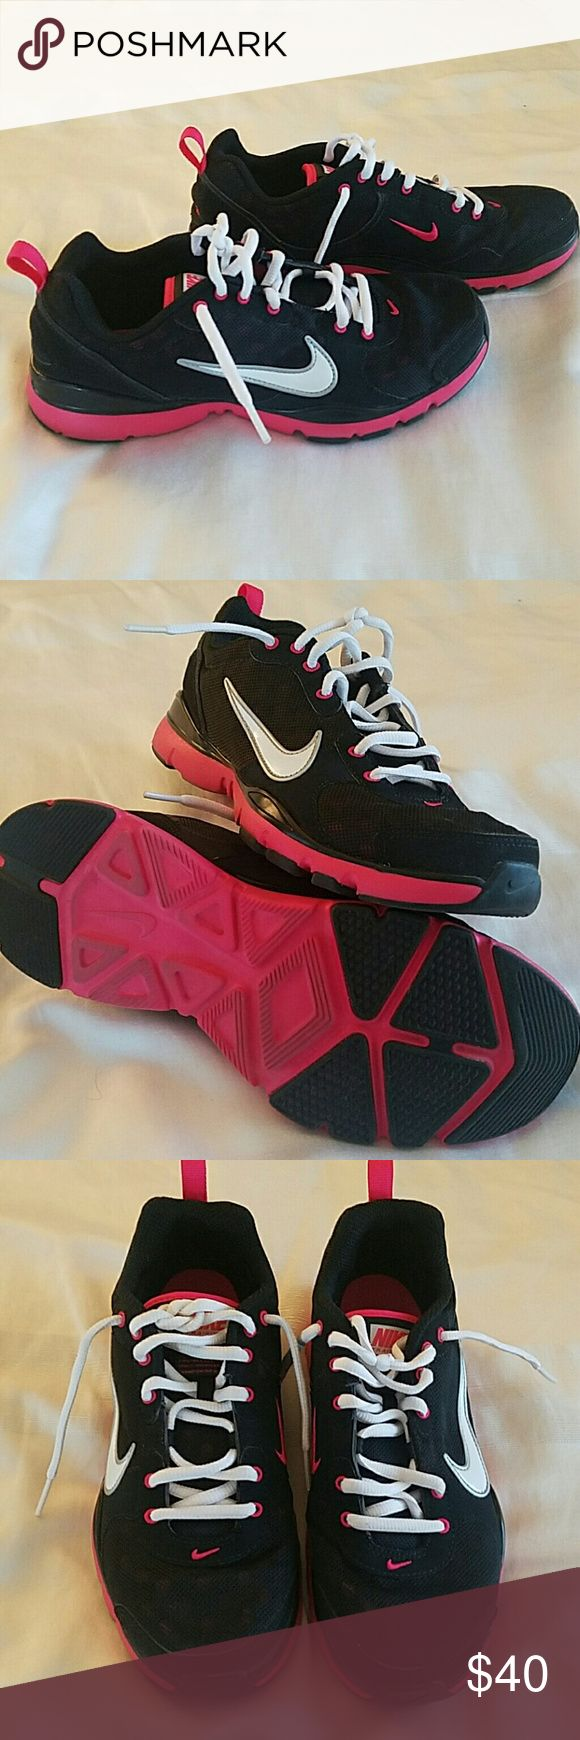 Nike shoes size 7 Black pink and white Nike running shoe. Clean soles, white laces, no damage to lace ends, hardly worn. Nike Shoes Athletic Shoes